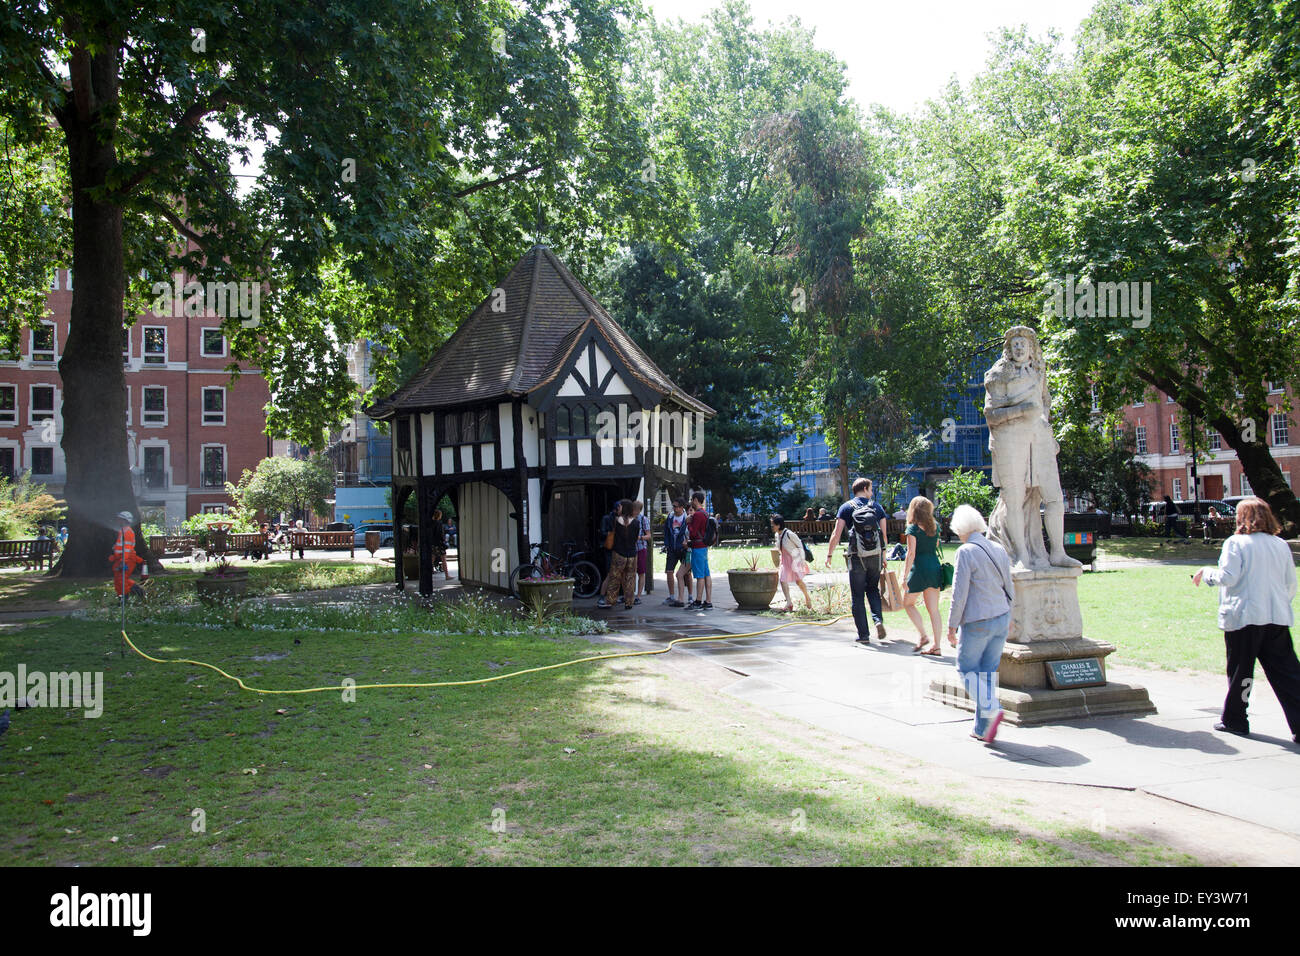 Soho Square Gardens In Soho London Uk Stock Photo Alamy Air and water temperature, precipitation, air pressure and humidity, wind speed, magnetic field and. https www alamy com stock photo soho square gardens in soho london uk 85522837 html